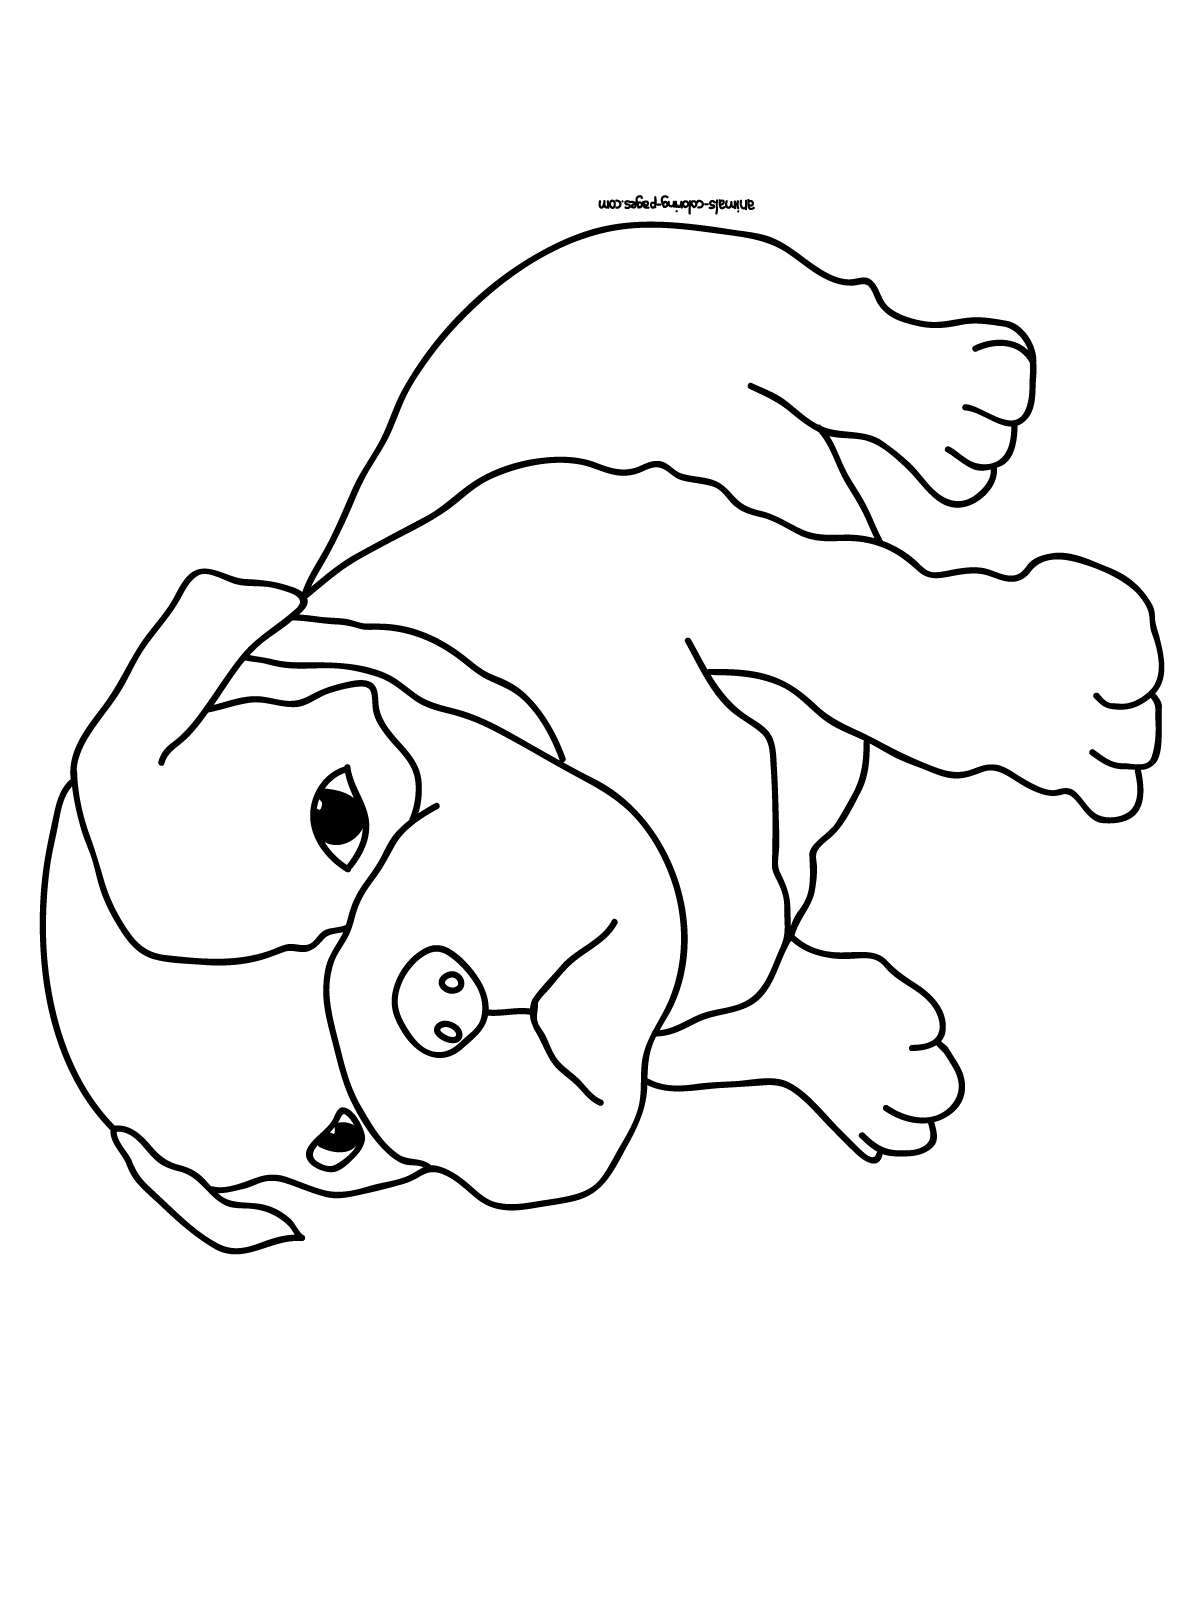 dog images to color